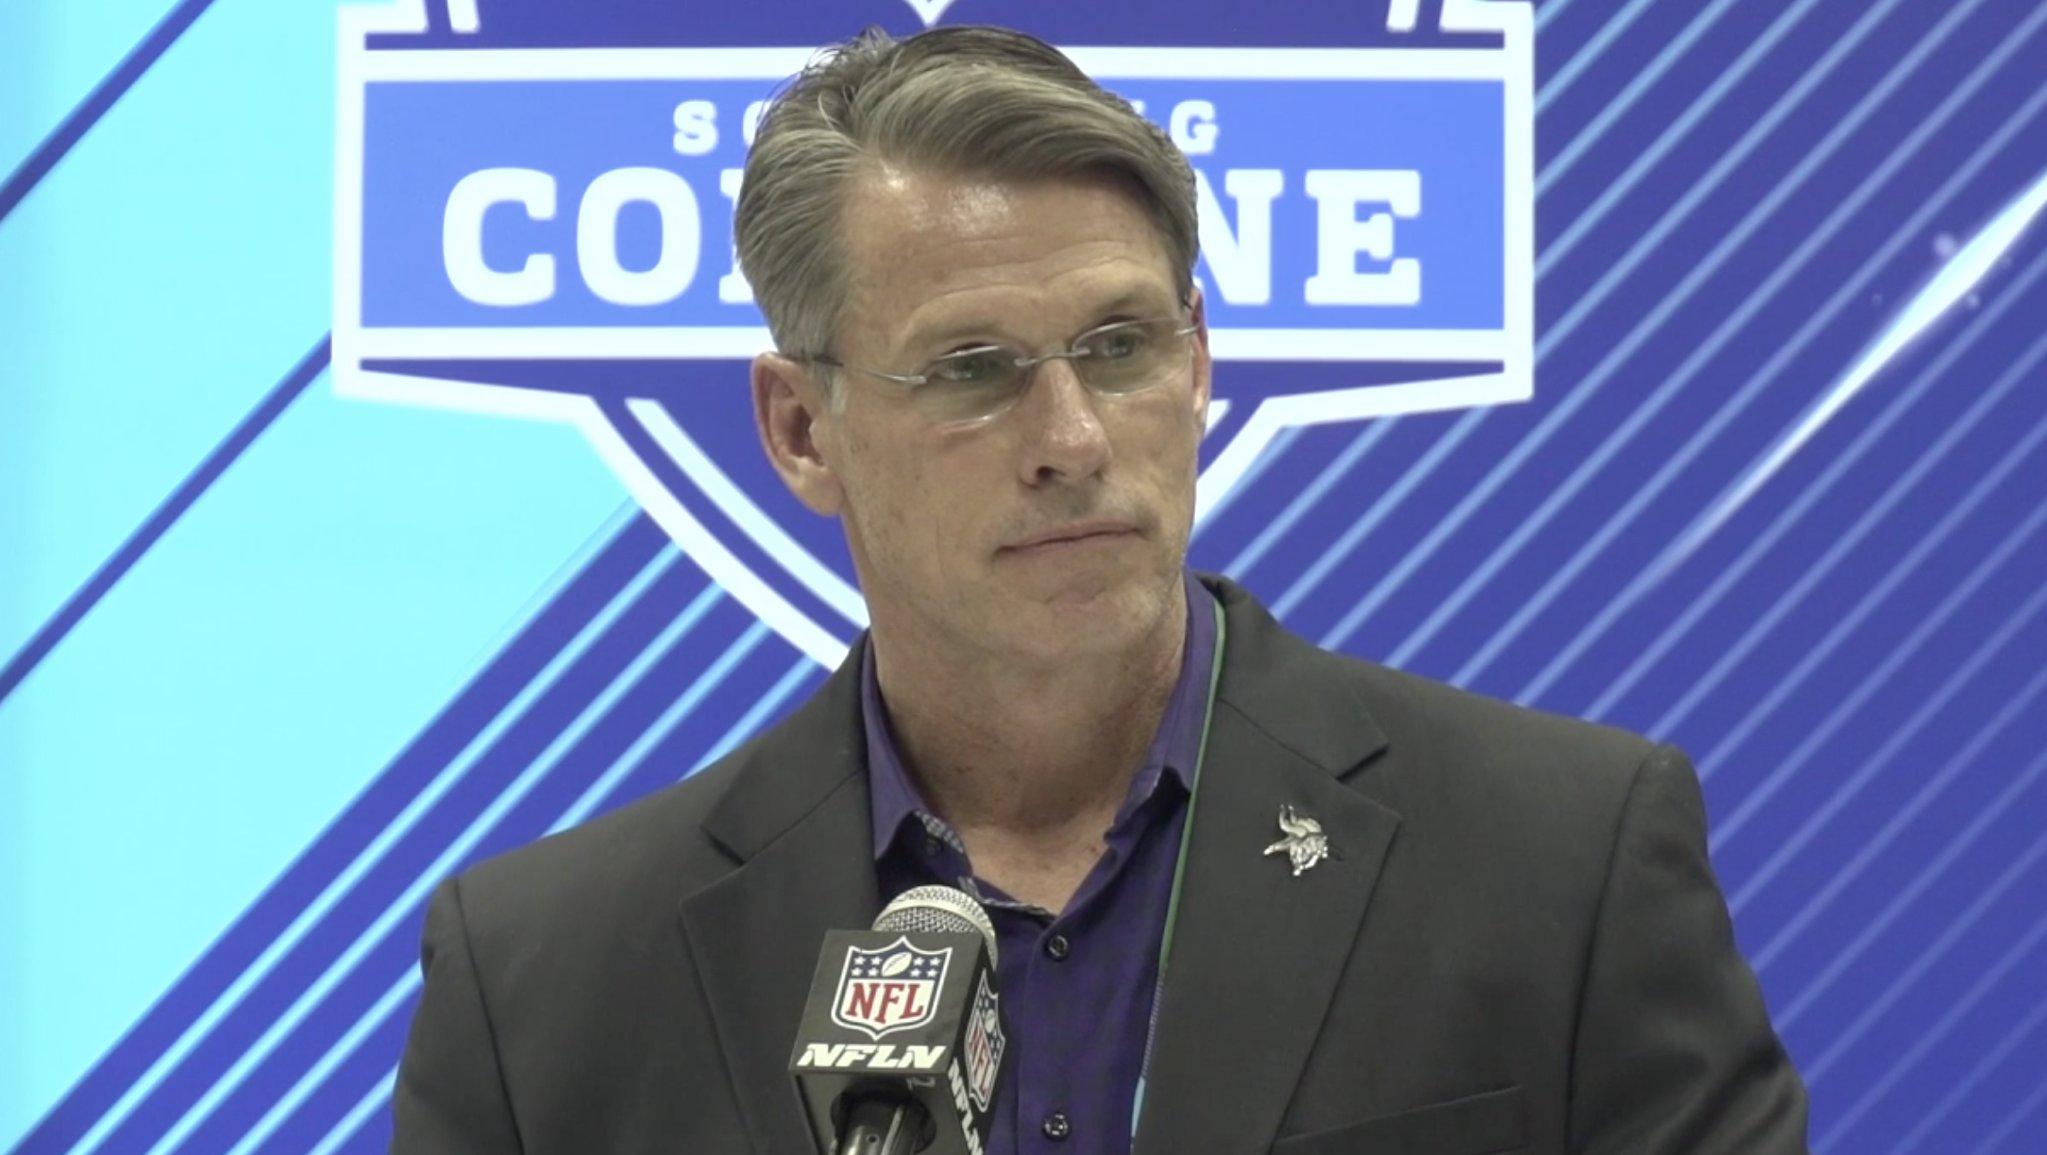 'There have been no decisions made.' - GM Rick Spielman on the QB situation   ��: https://t.co/VJYbAz69uR https://t.co/qPsXm6ibp1